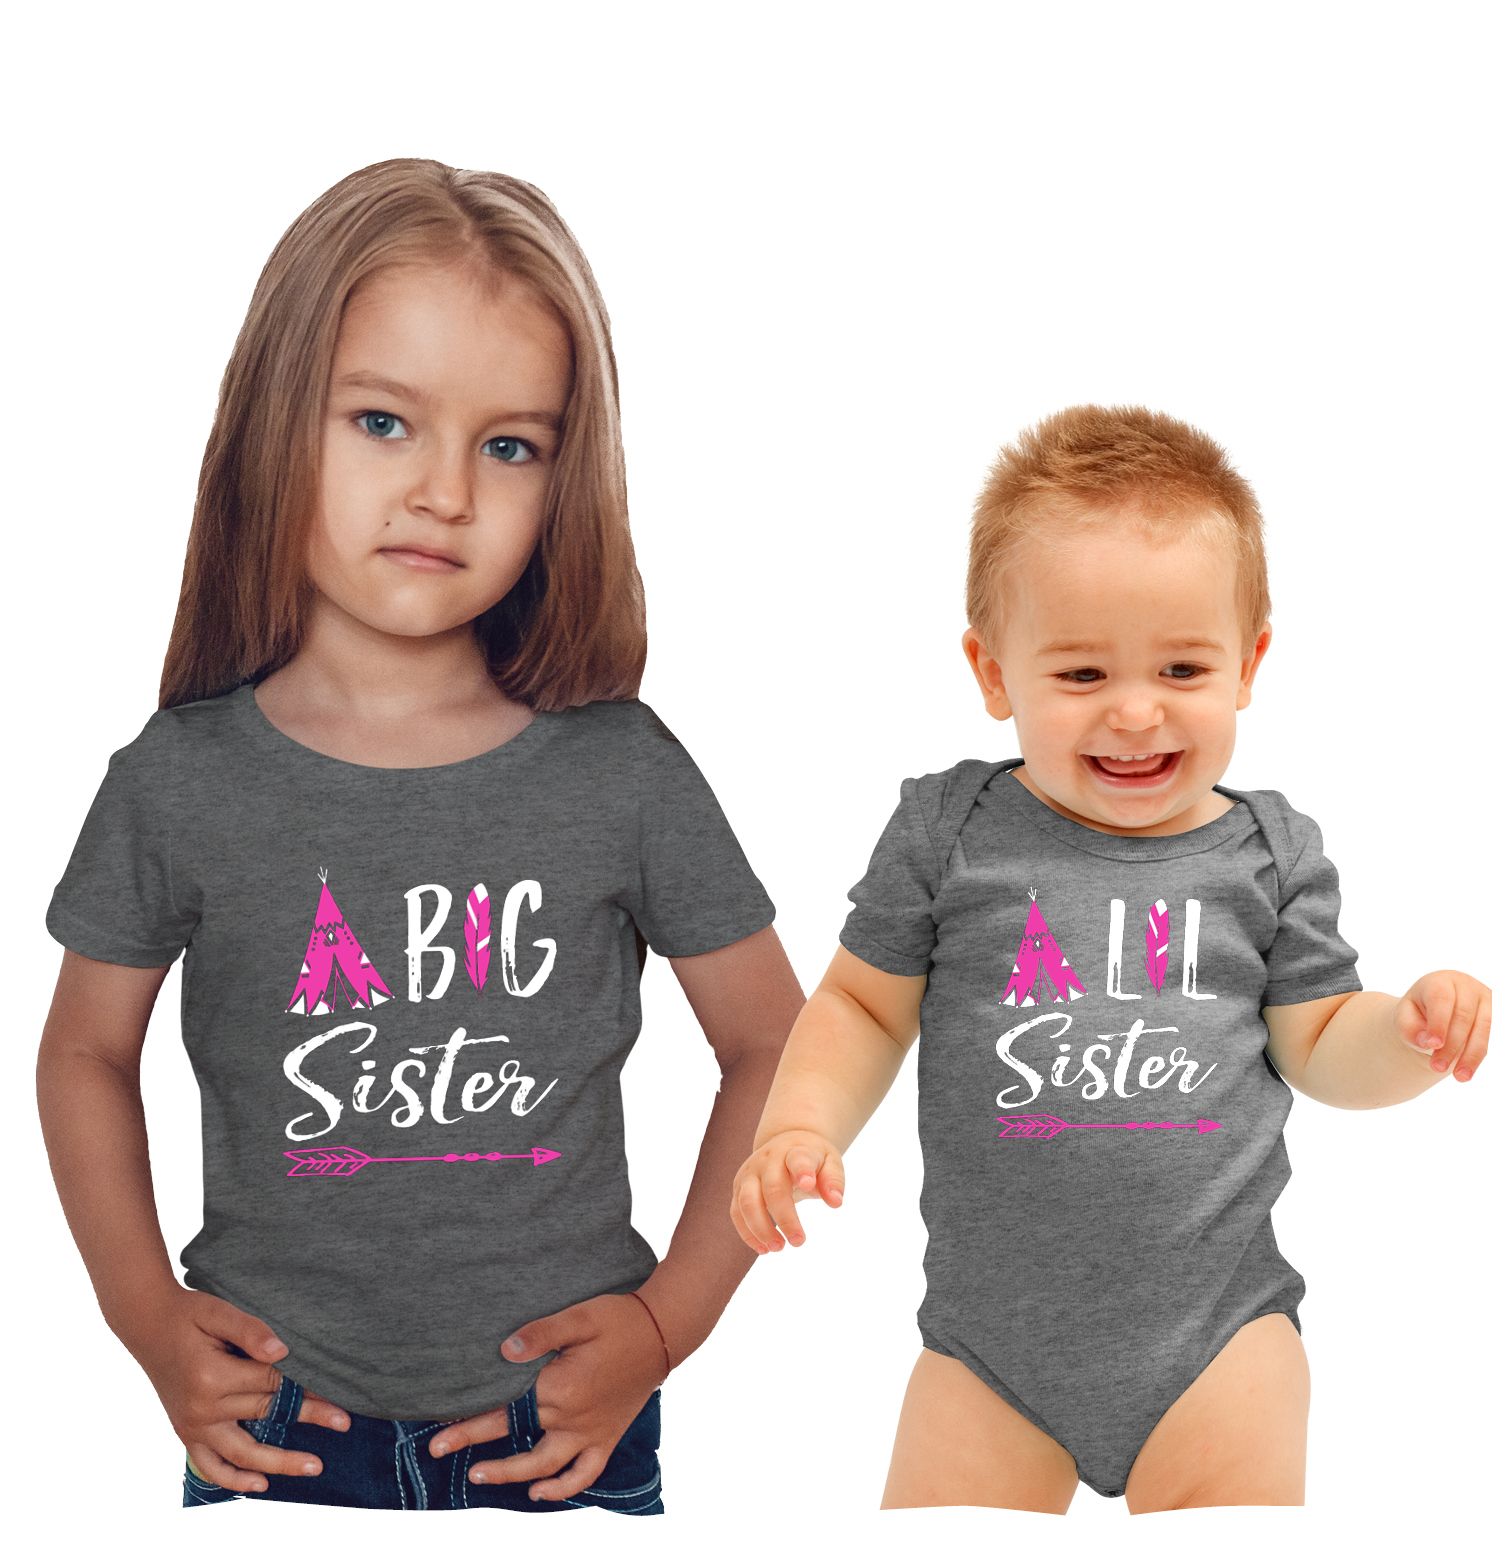 Feisty And Fabulous Big Sister Little Sister Shirts Matching Outfits For Sisters Gray Big Sister Baby Sister Walmart Com Walmart Com